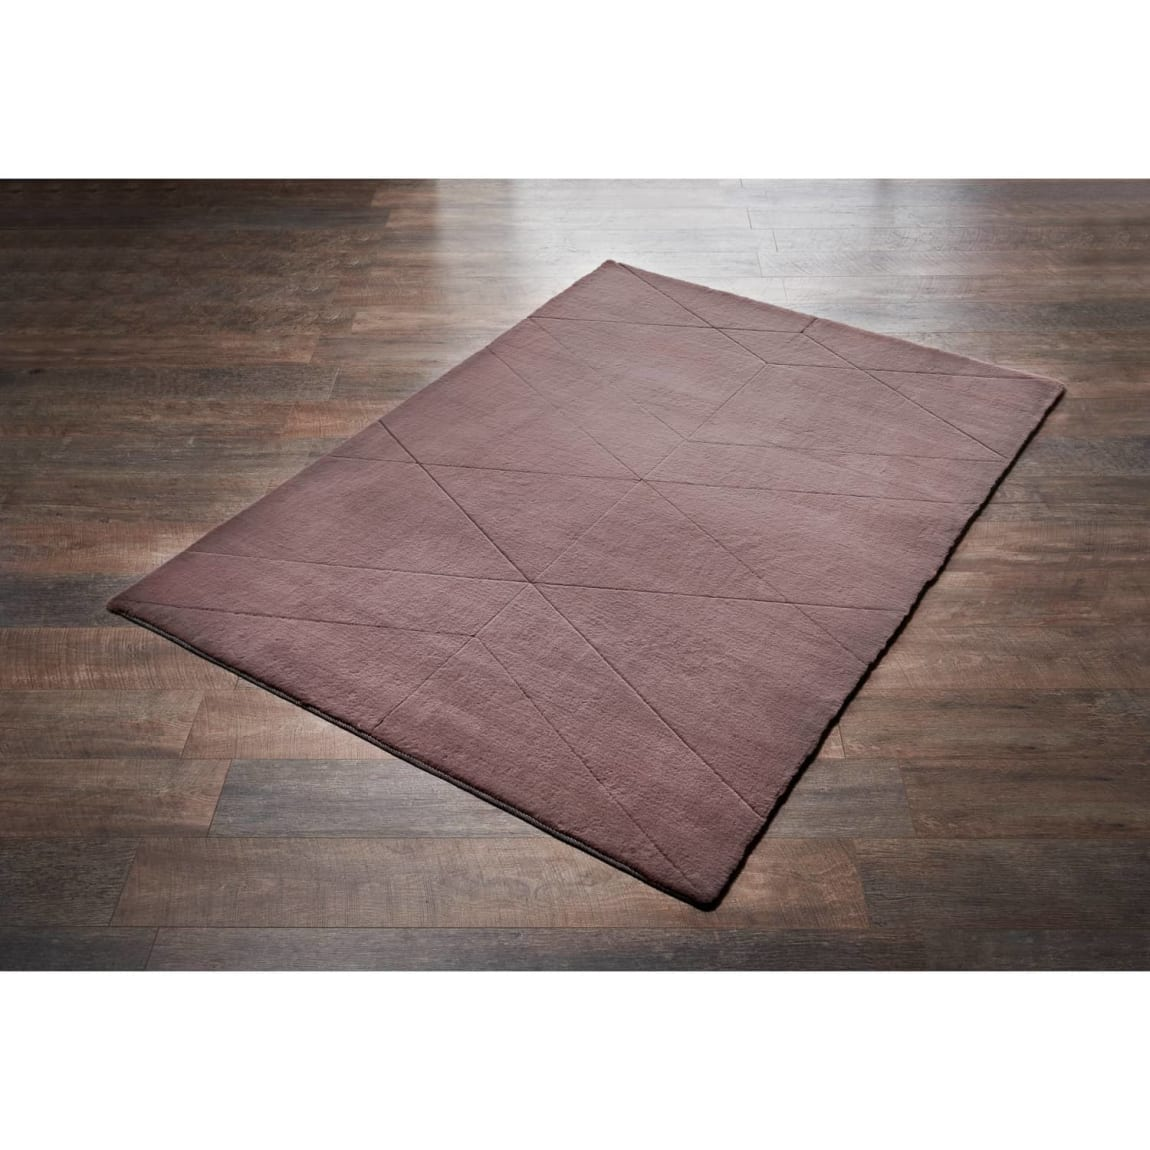 Blush Sculp Fur Rug - 110 x 160cm